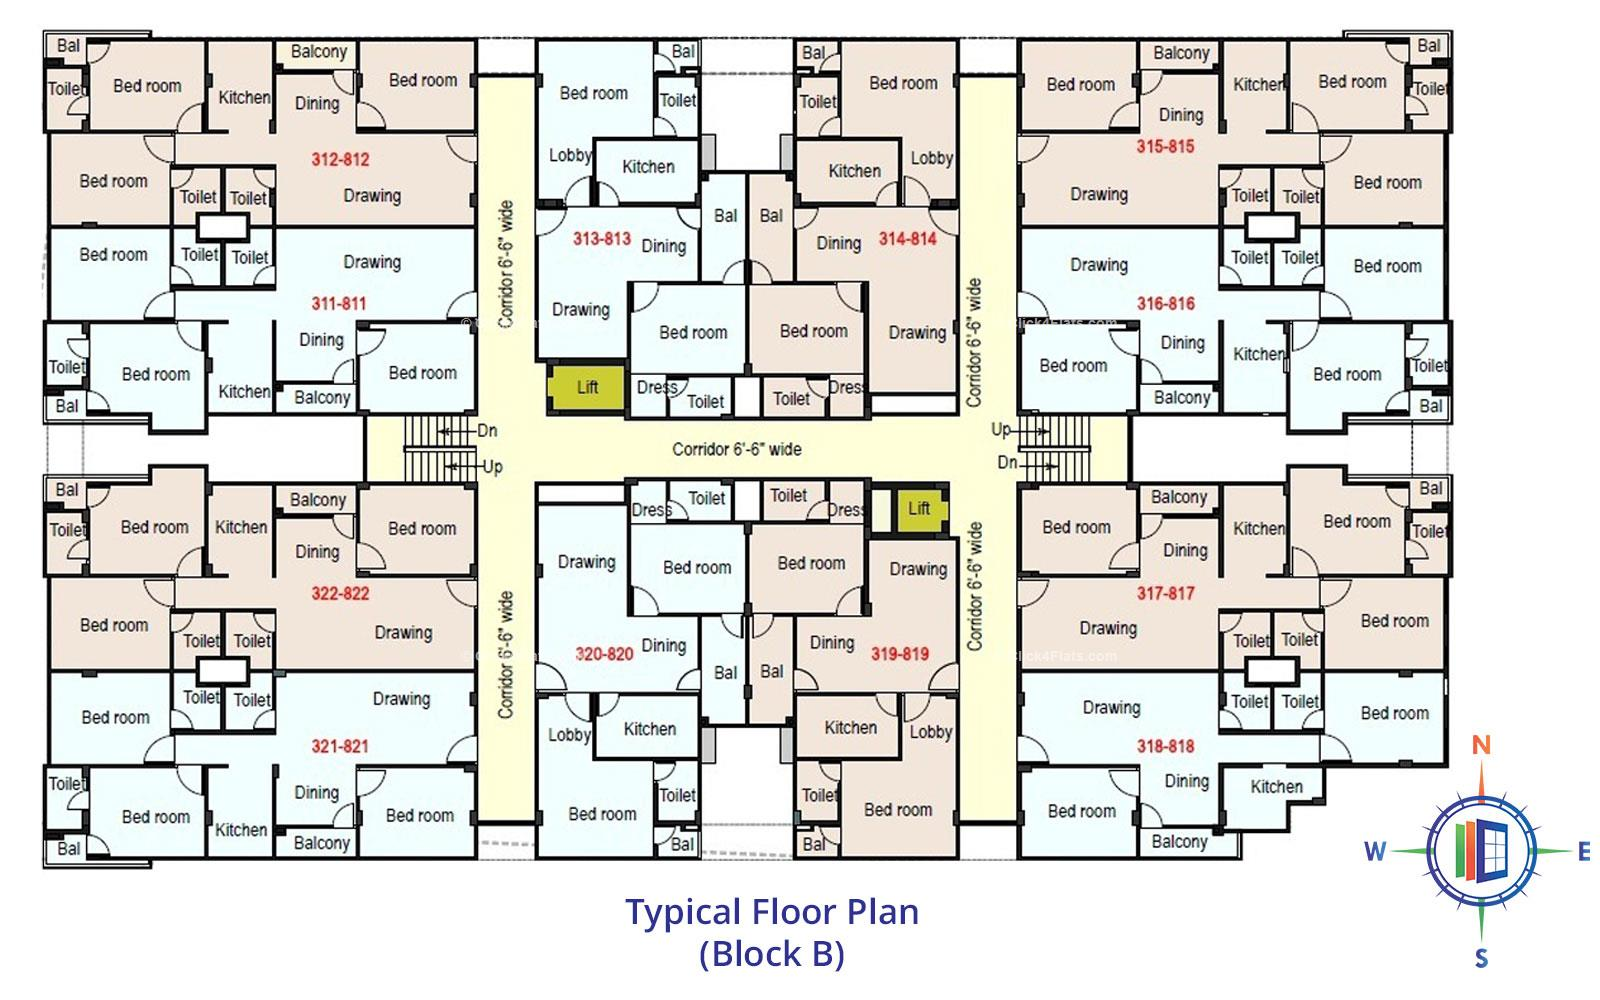 Royale Platinum Typical Floor Plan (Block-B)